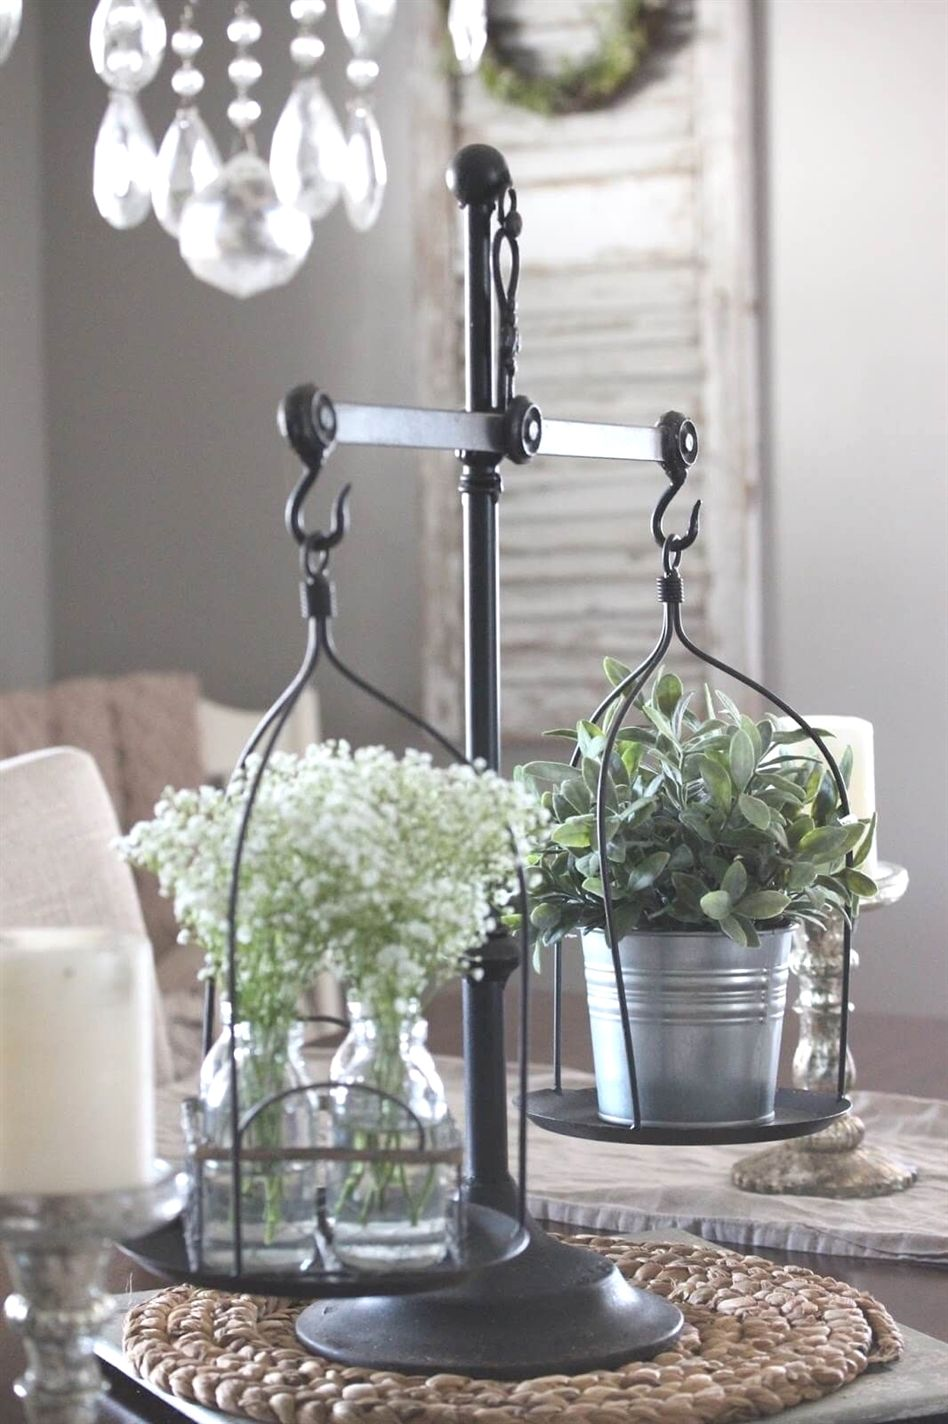 Old kitchen scale with herbs and flowers kitchendecorideas